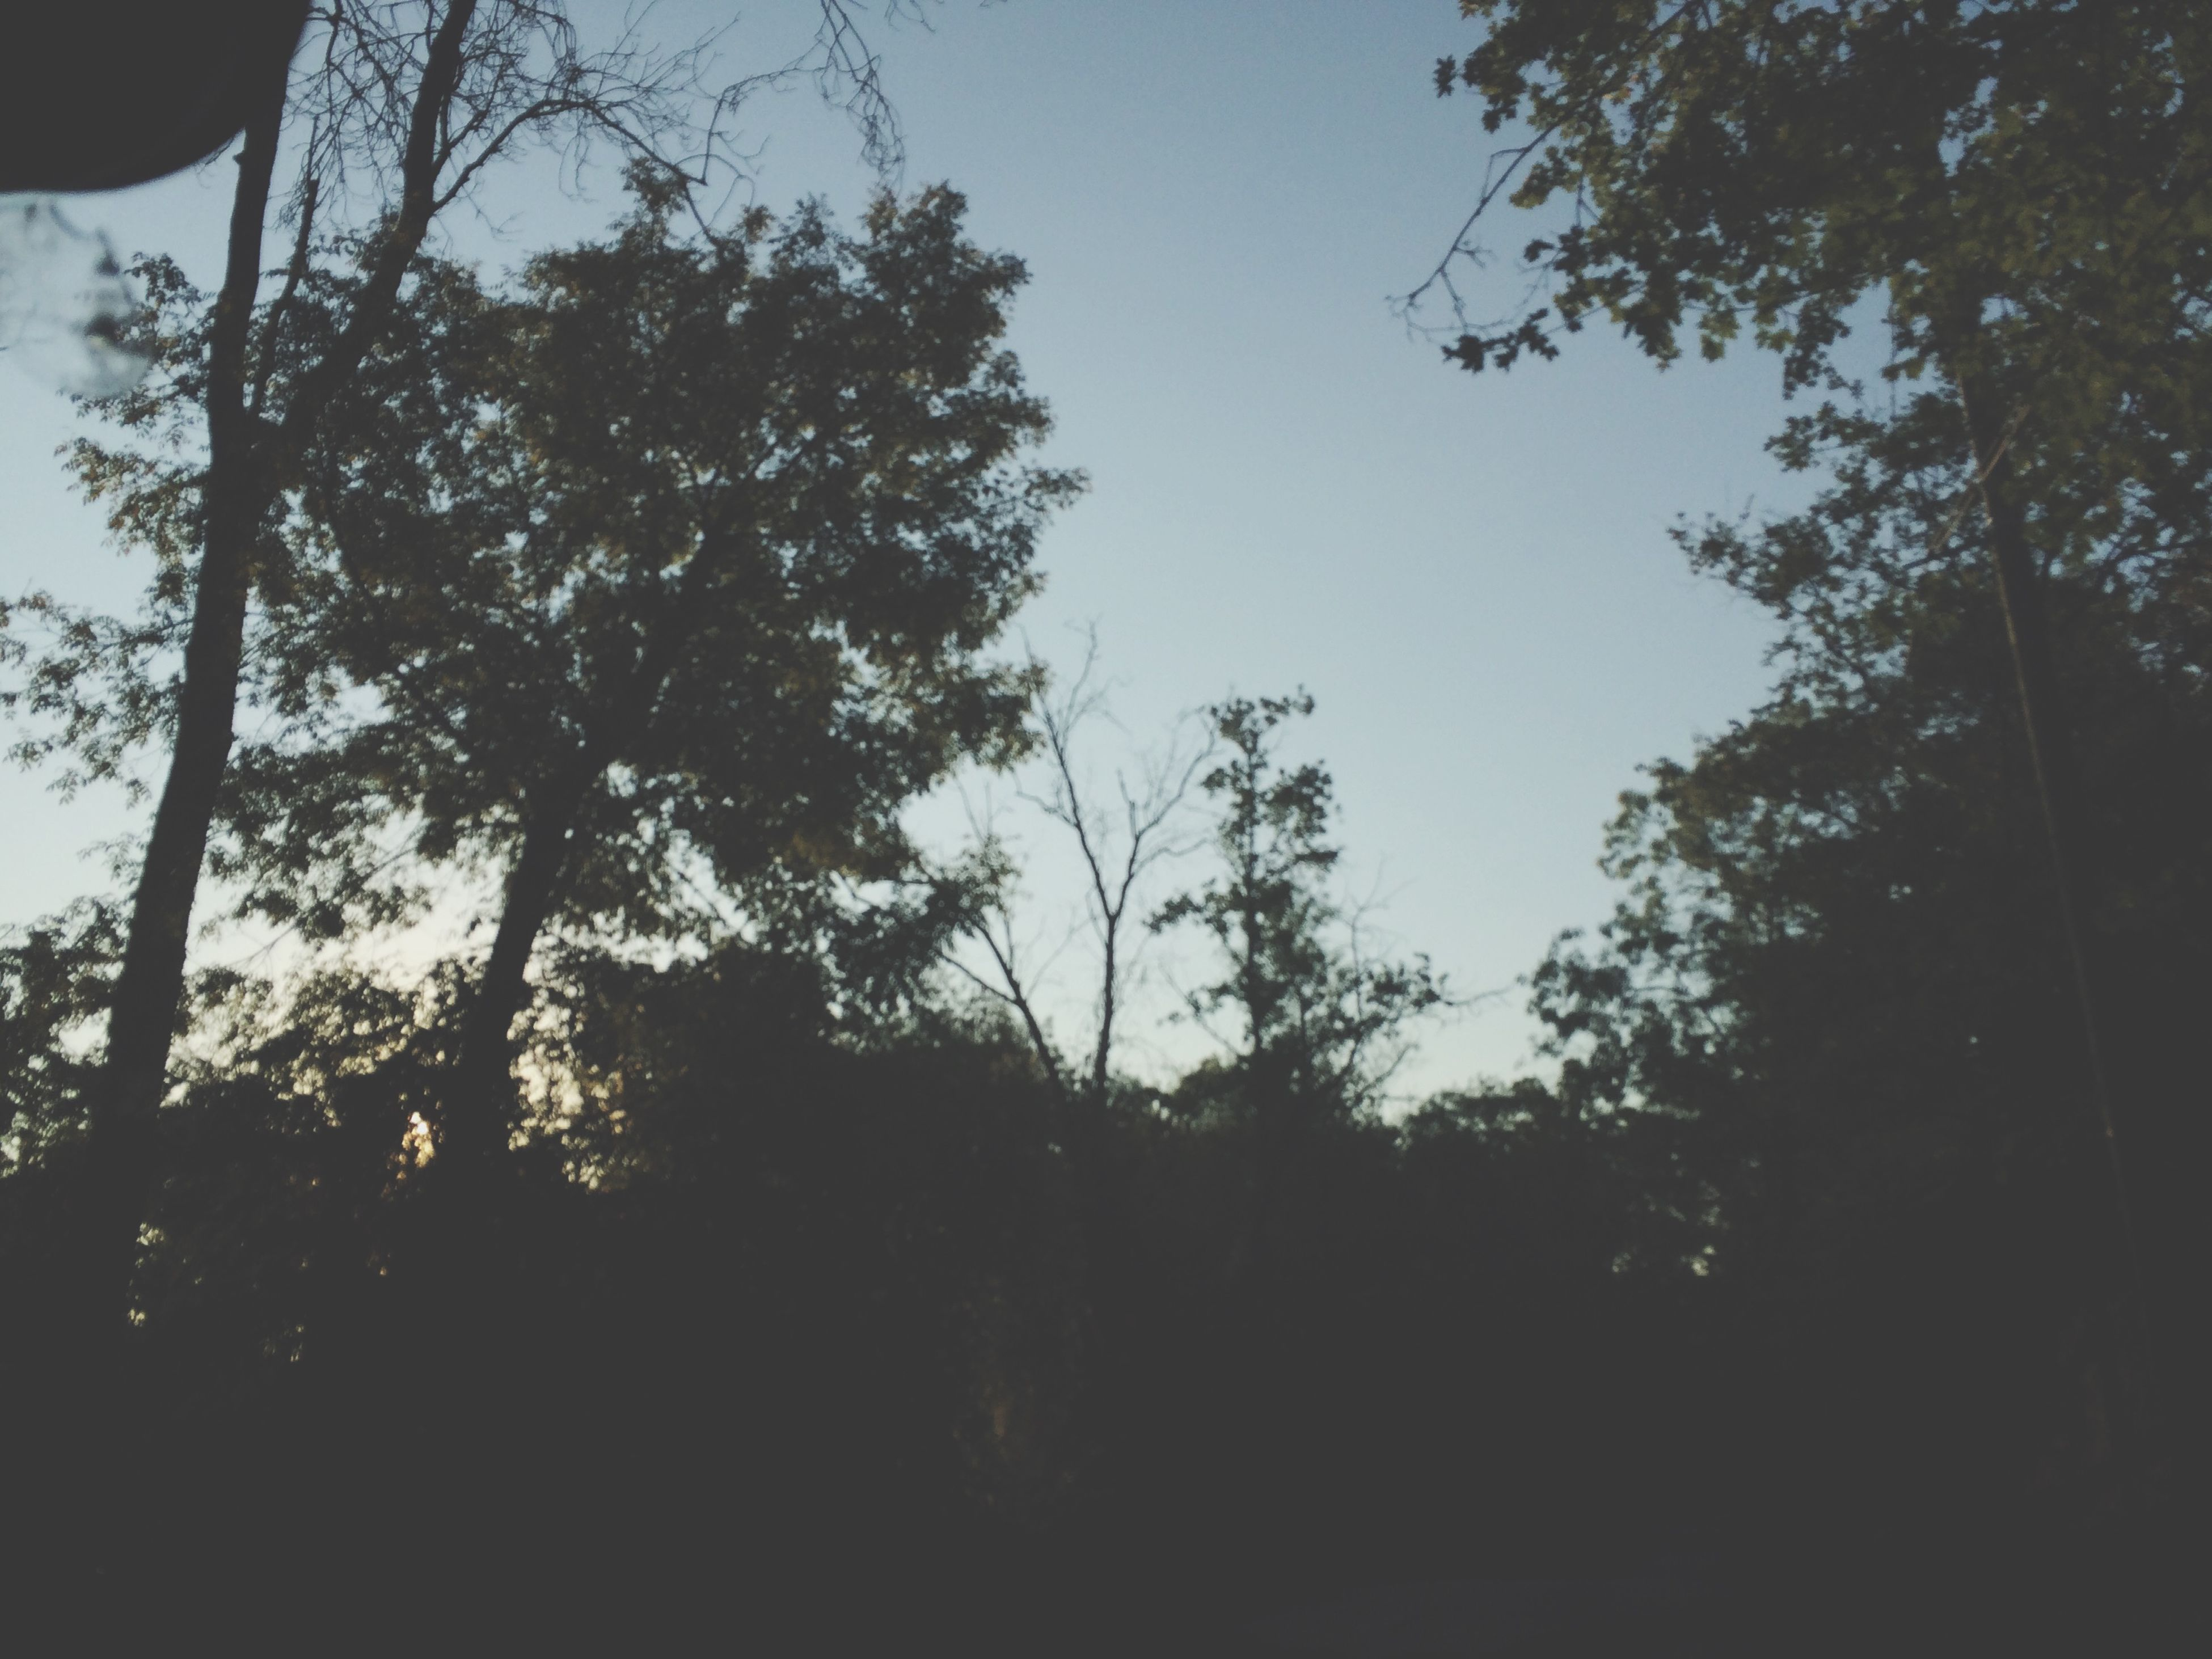 tree, silhouette, low angle view, growth, tranquility, nature, branch, sky, beauty in nature, tranquil scene, clear sky, scenics, forest, sunlight, outdoors, no people, sunset, tree trunk, non-urban scene, day